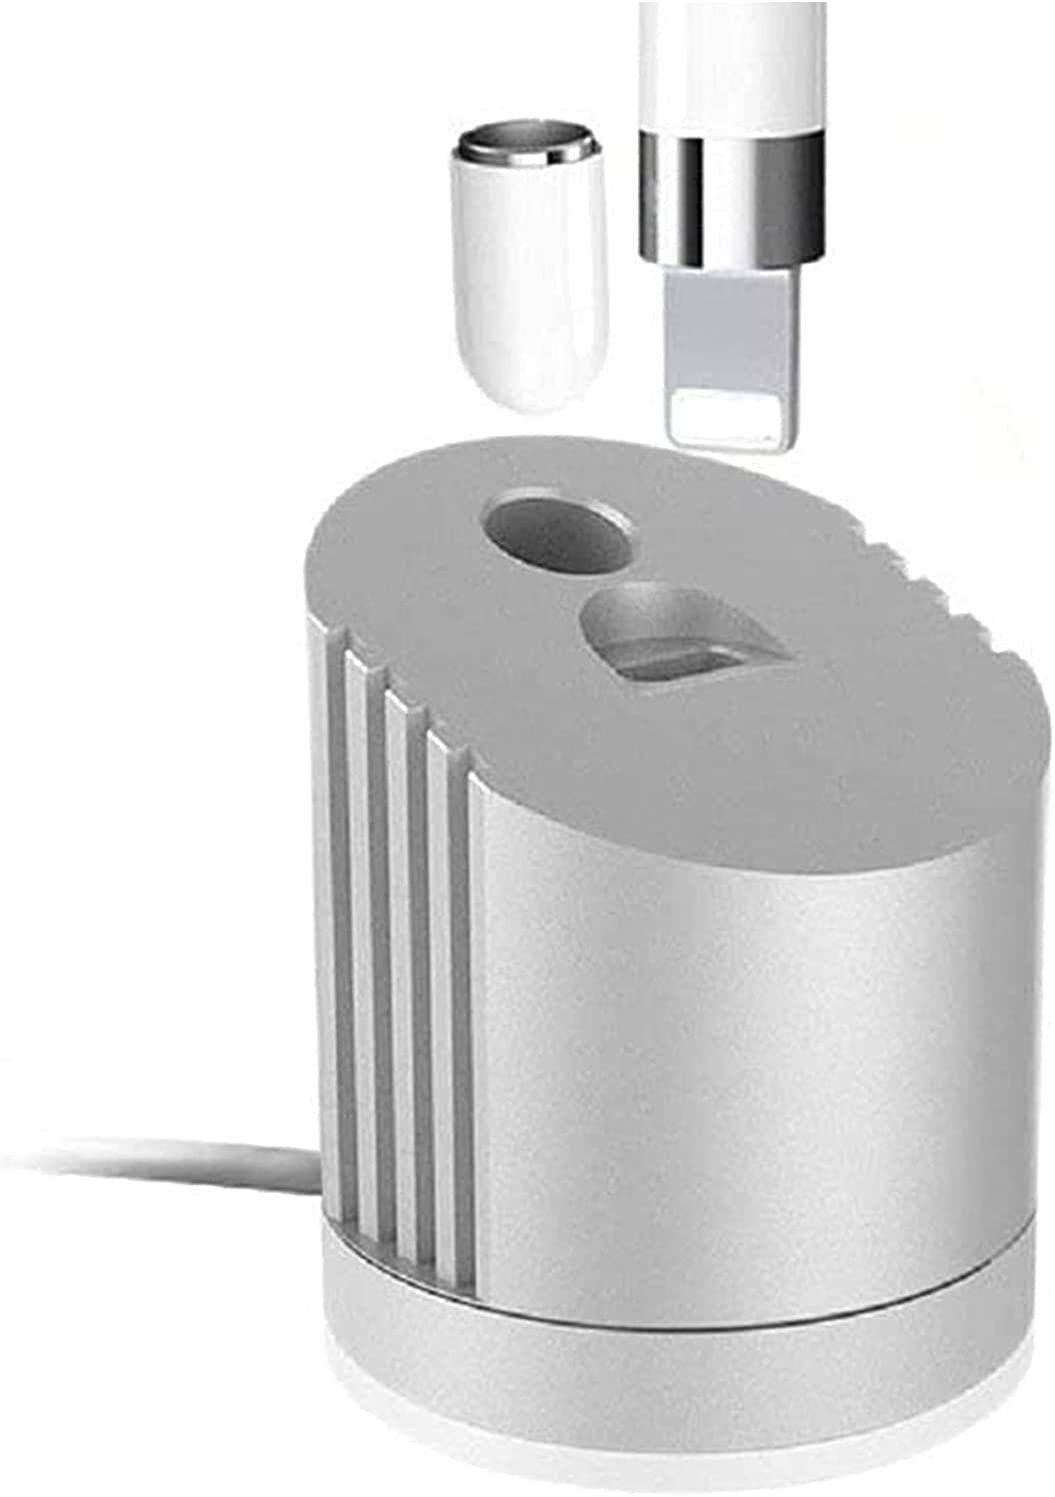 Charging Stand for Apple Max 44% OFF New products world's highest quality popular Pencil Charger ERSTUK Aluminum Premium